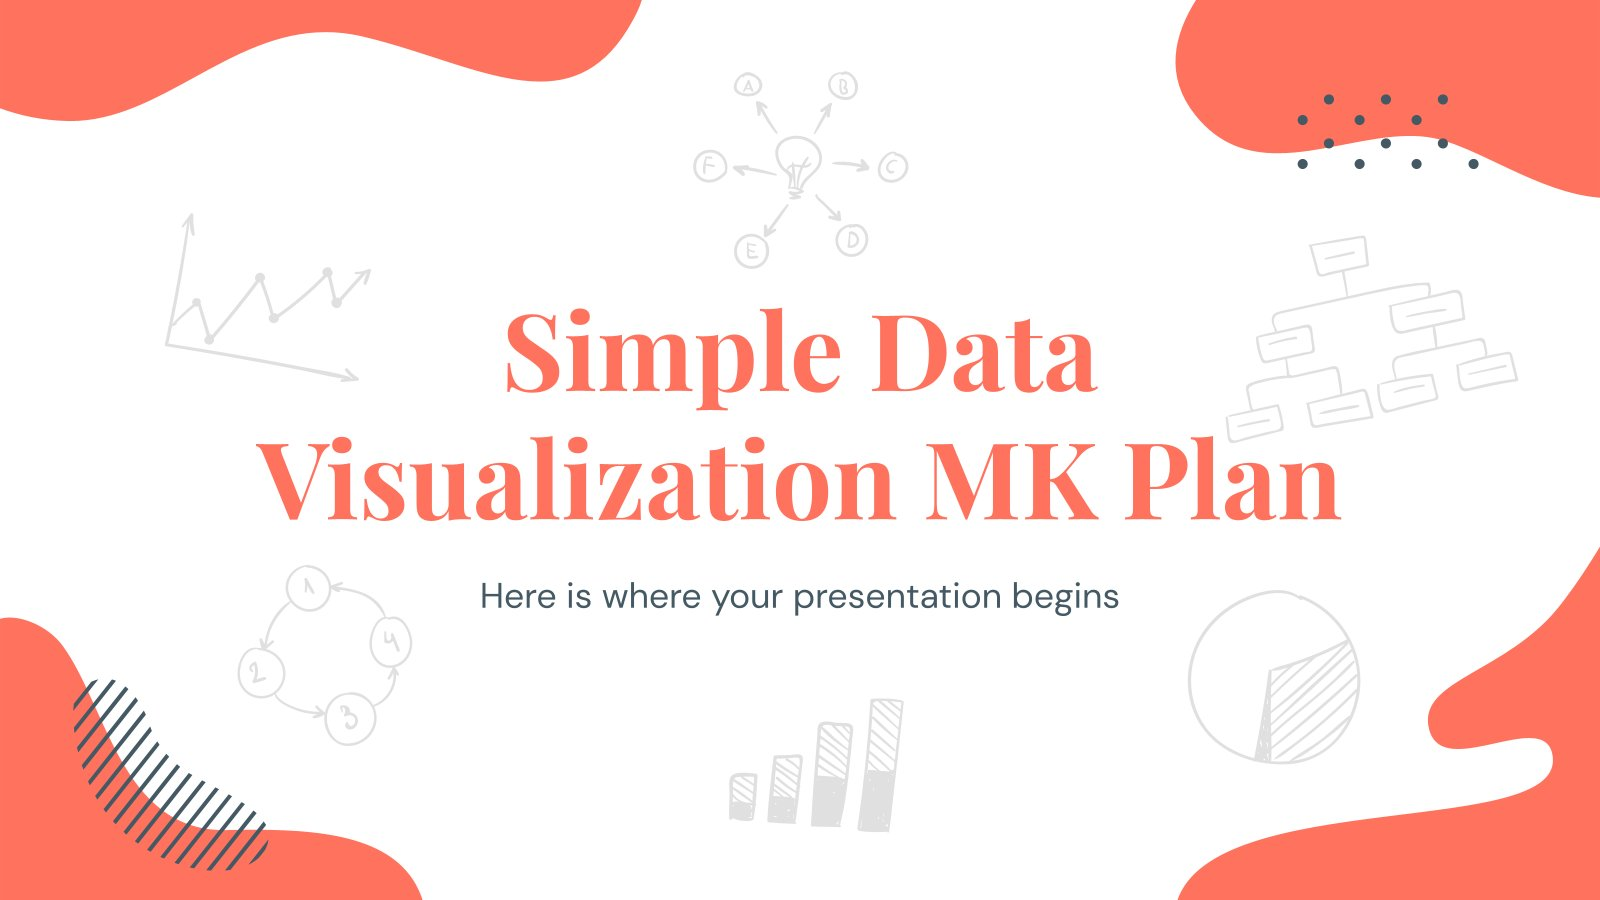 Simple Data Visualization MK Plan presentation template